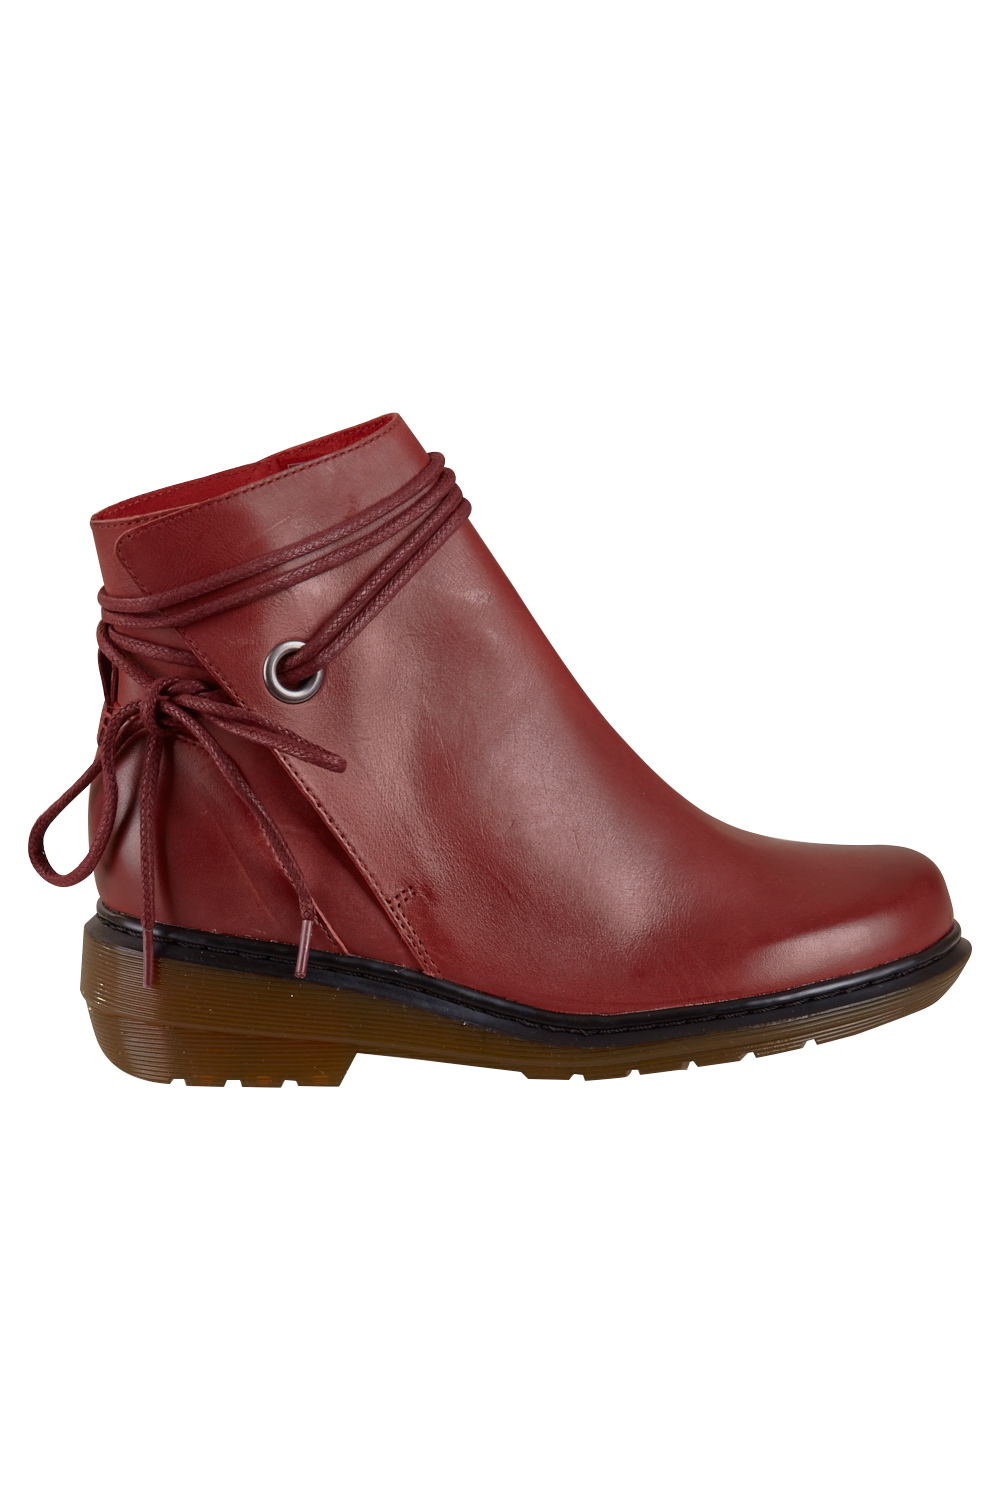 new dr martens womens boots shelby hi tie boot ebay